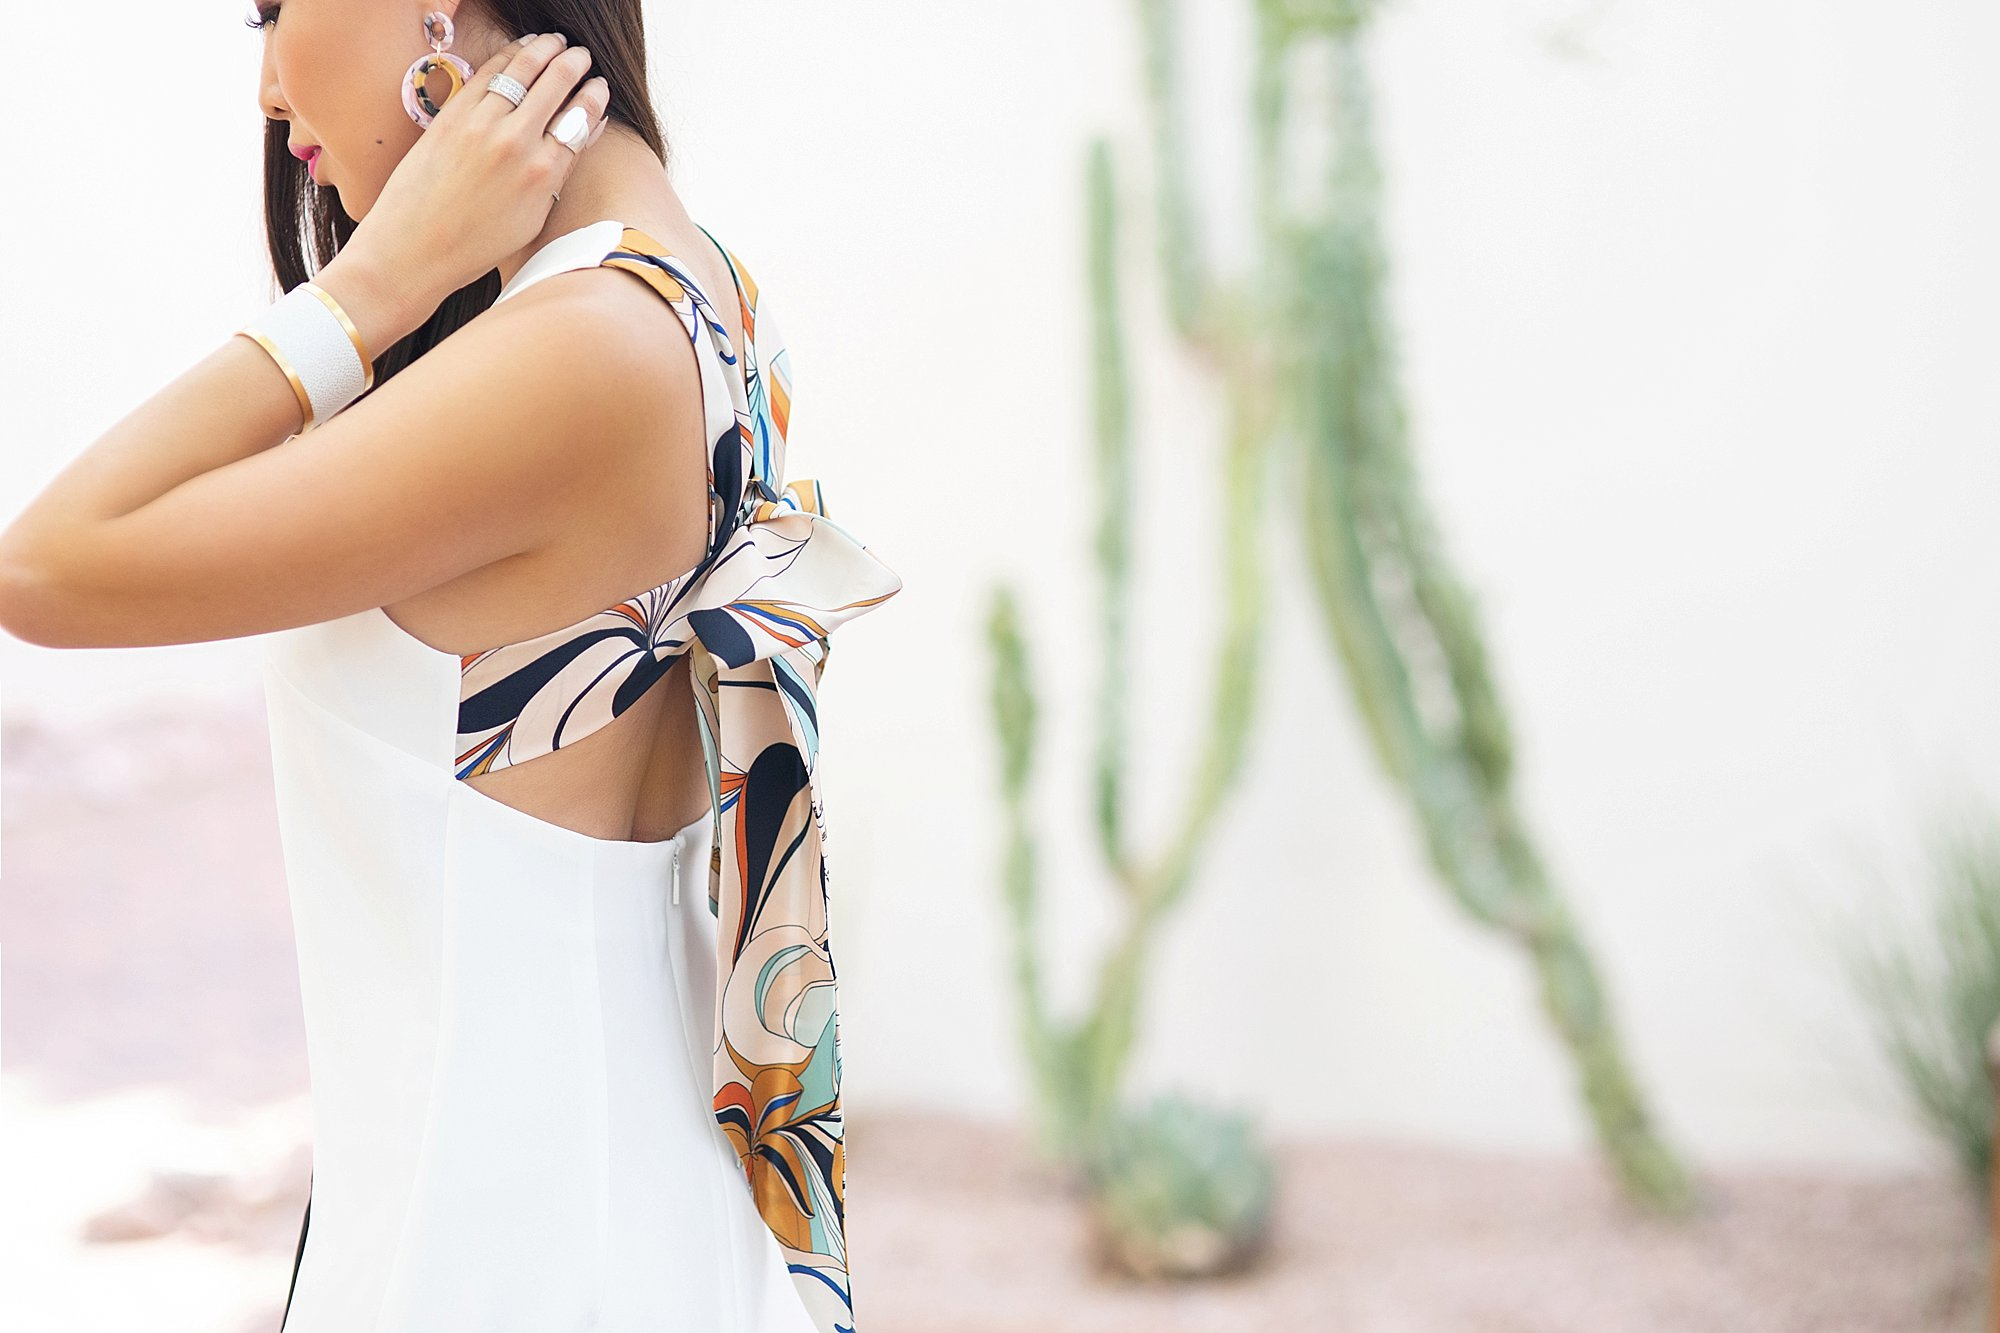 Mango Gugi2 scarf dress on blogger Diana Elizabeth in Phoenix, Arizona. Scarf dress paired a black clutch by India Hicks and white leather brass cuff and tortoise acrylic hoops